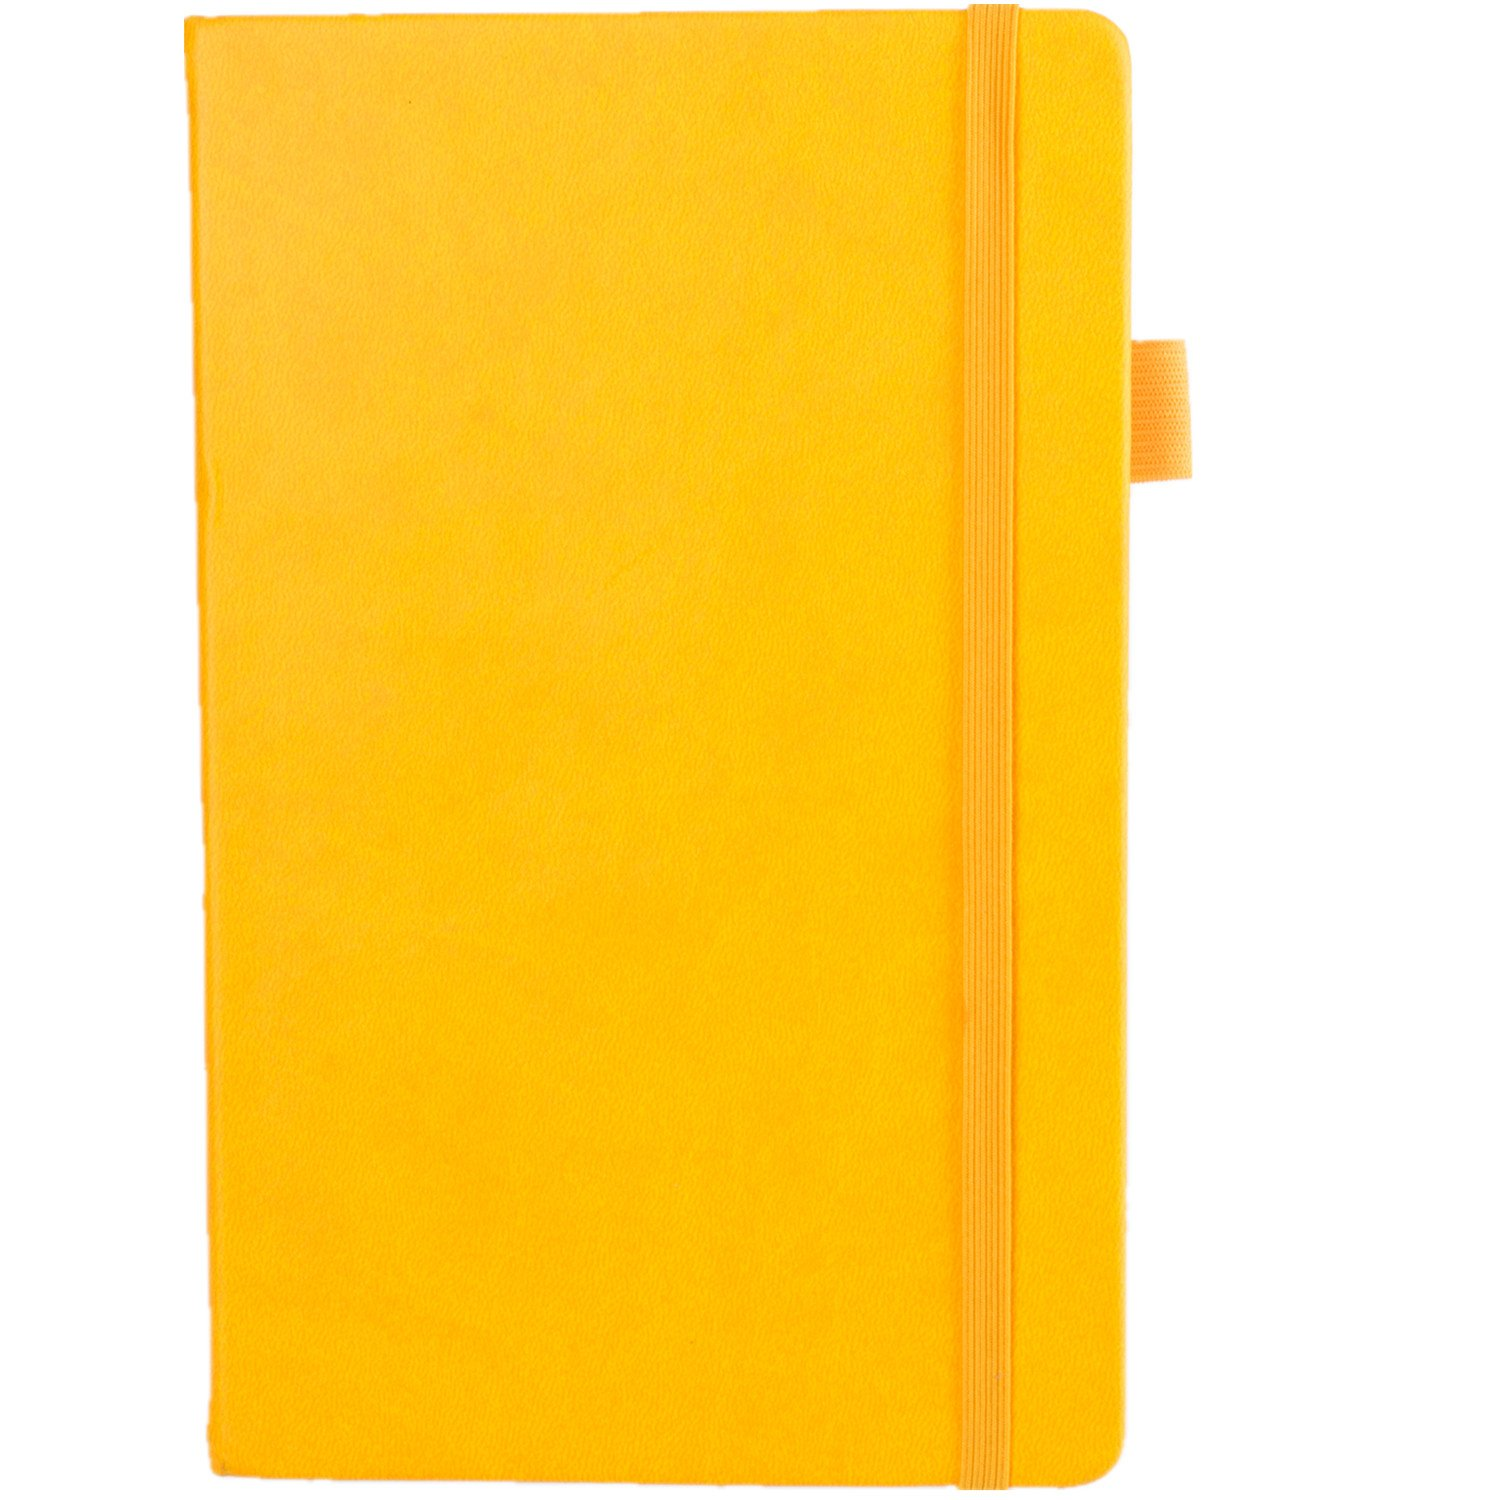 ROF Bullet Journal Dotted Notebook,A5 5.3''×8.3''Thick Paper Bleeding Resistant 80gsm 240Pages Lay Flat,Sturdy Binding not Fall Apart,Yellow Dot Grid Journal with Pen Loop